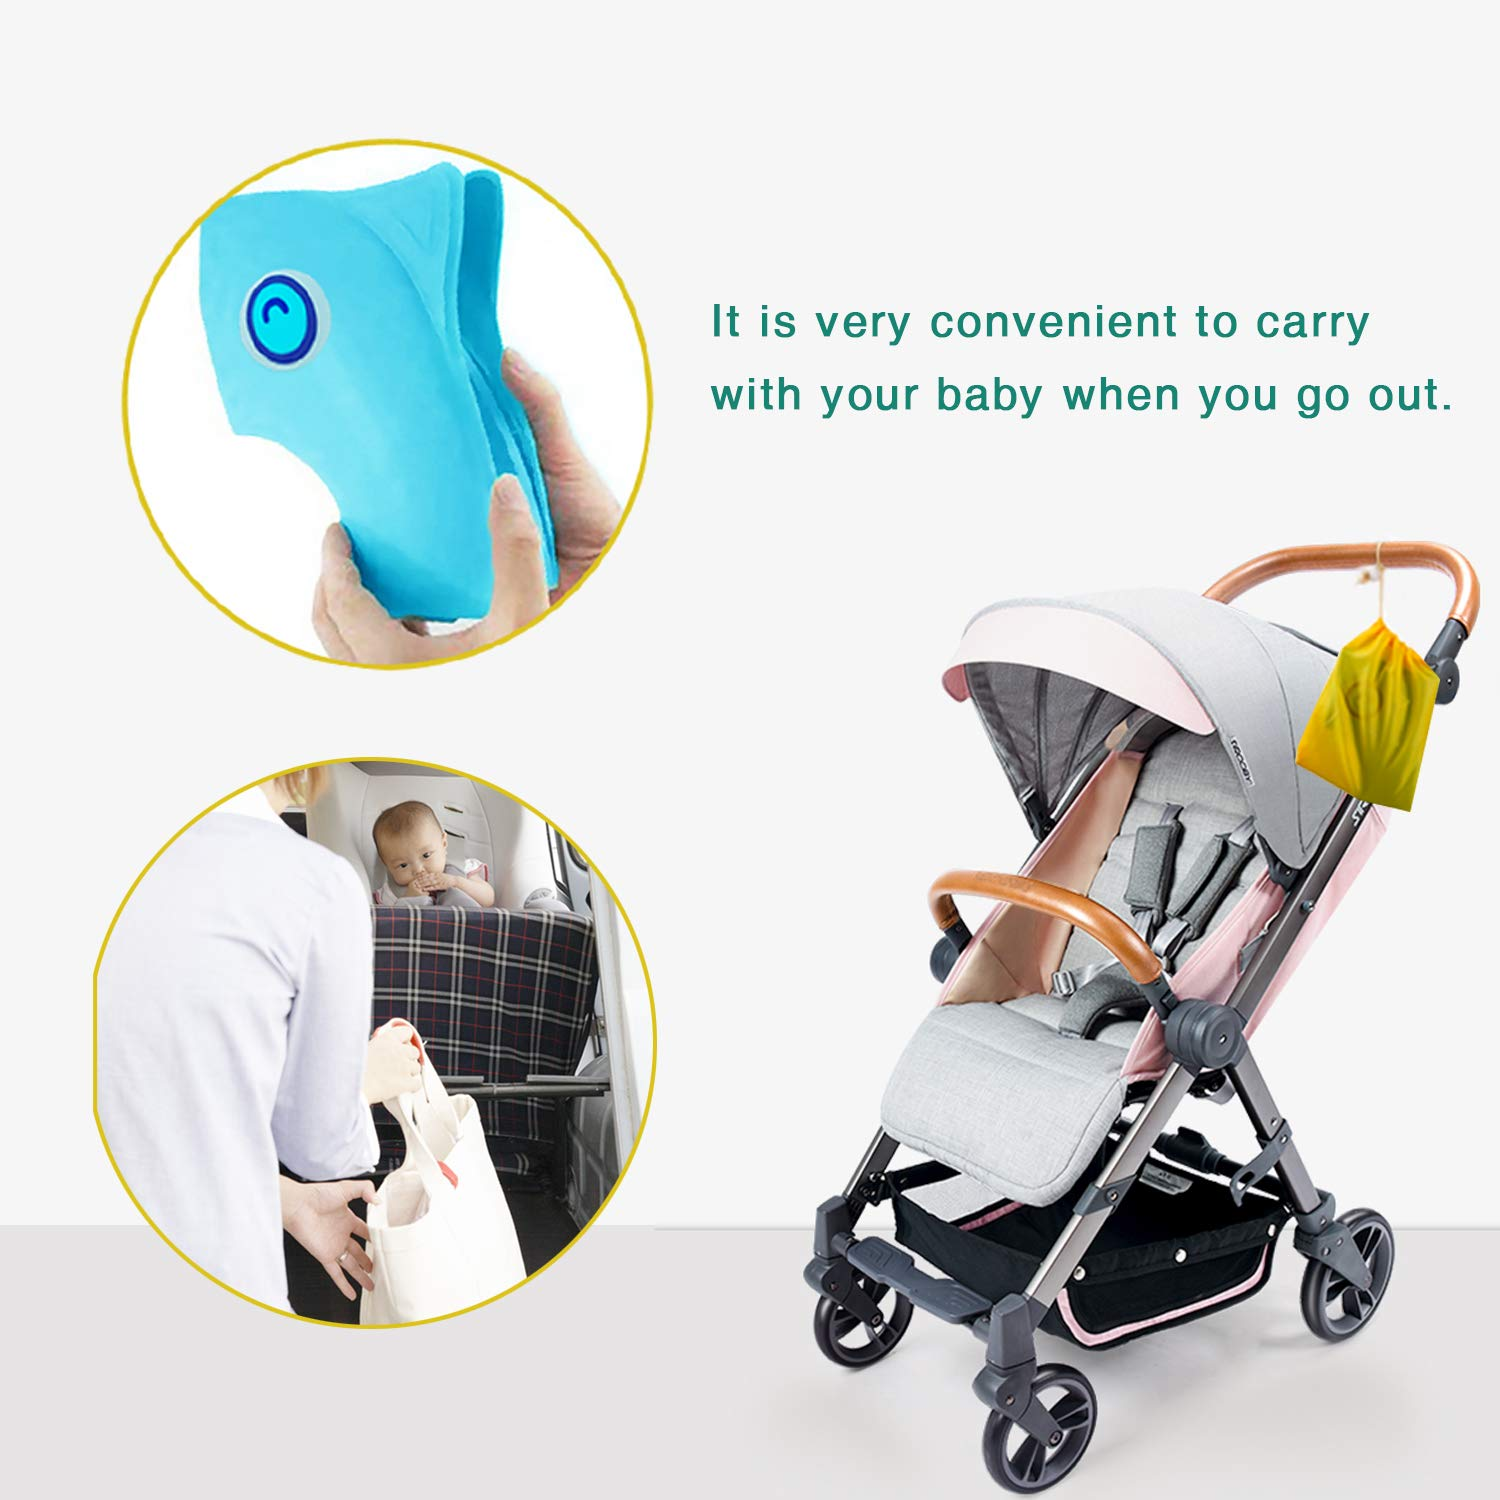 TURN RAISE Baby Toilet Seat Blue 6 Pcs Non Slip Silicon Pads Training Seat Cover for Toddlers Kids